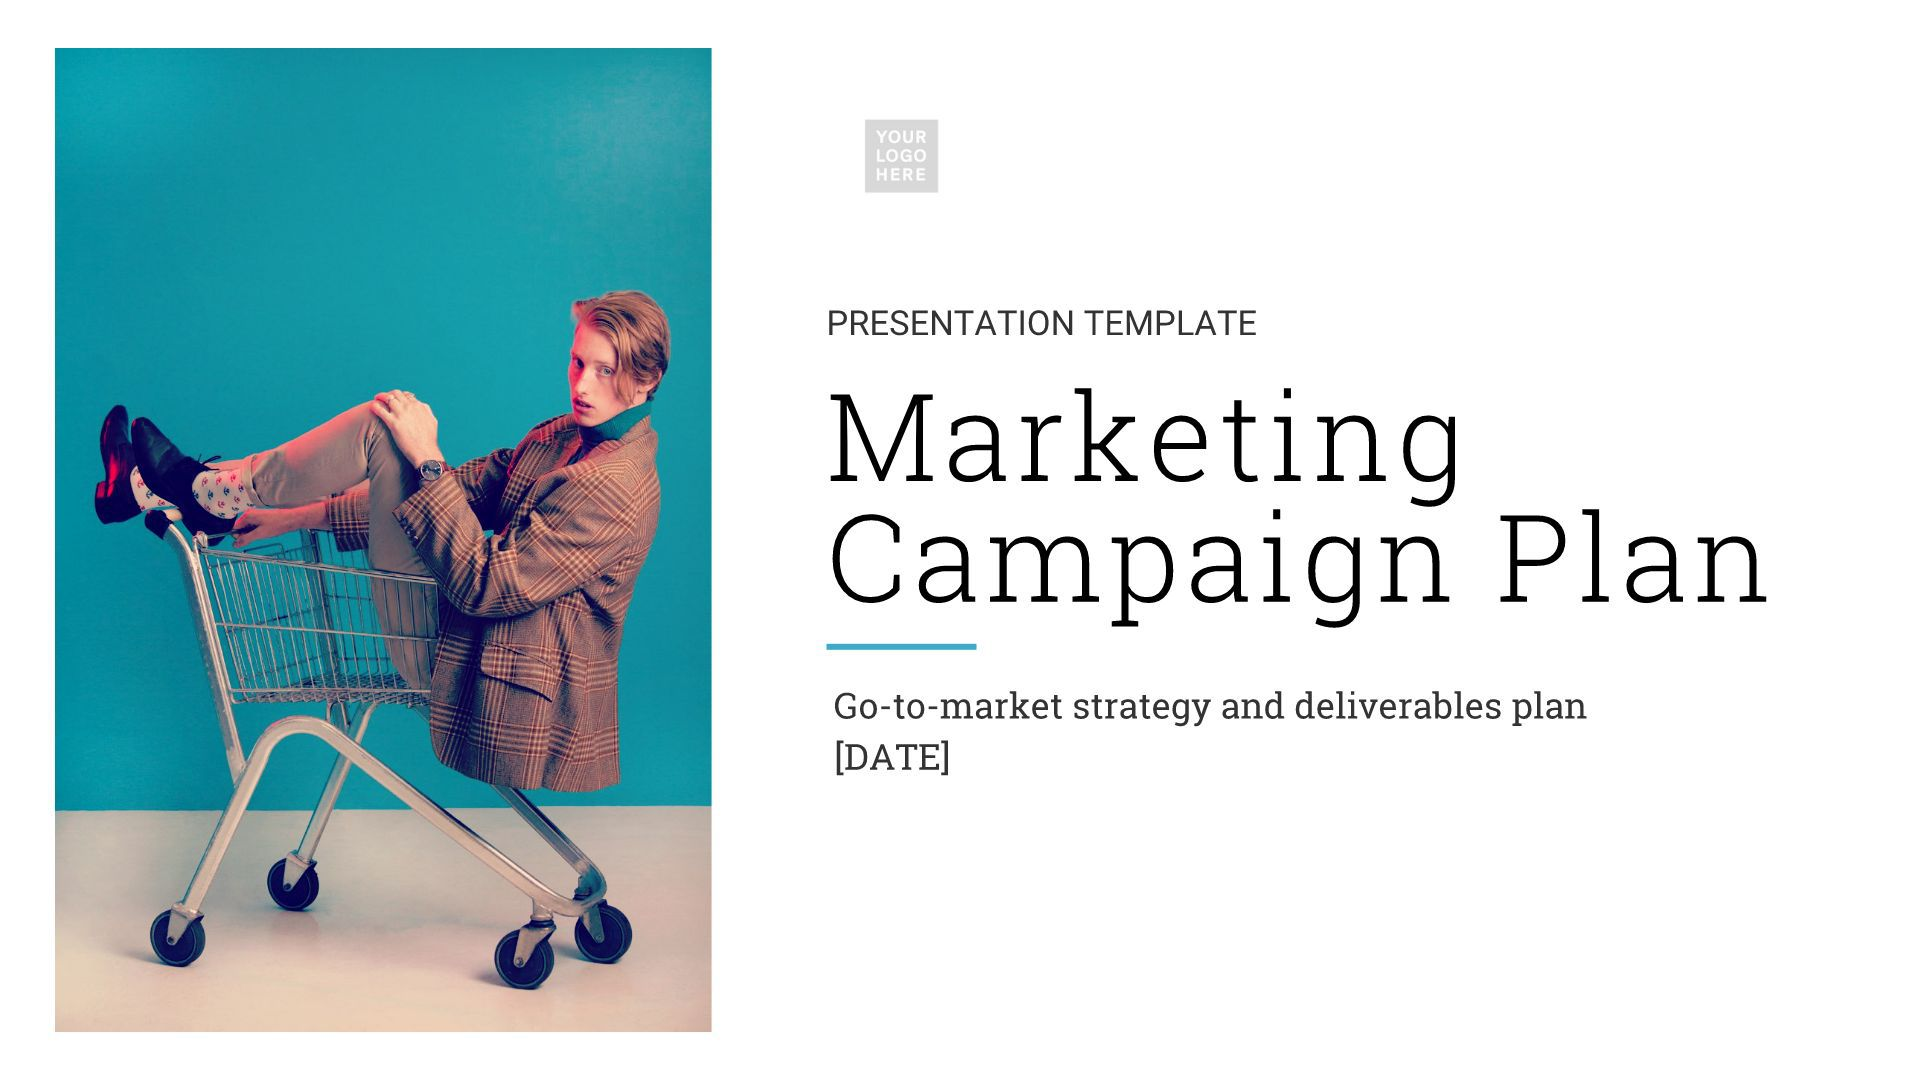 002 Best Marketing Campaign Plan Template Free Photo Full